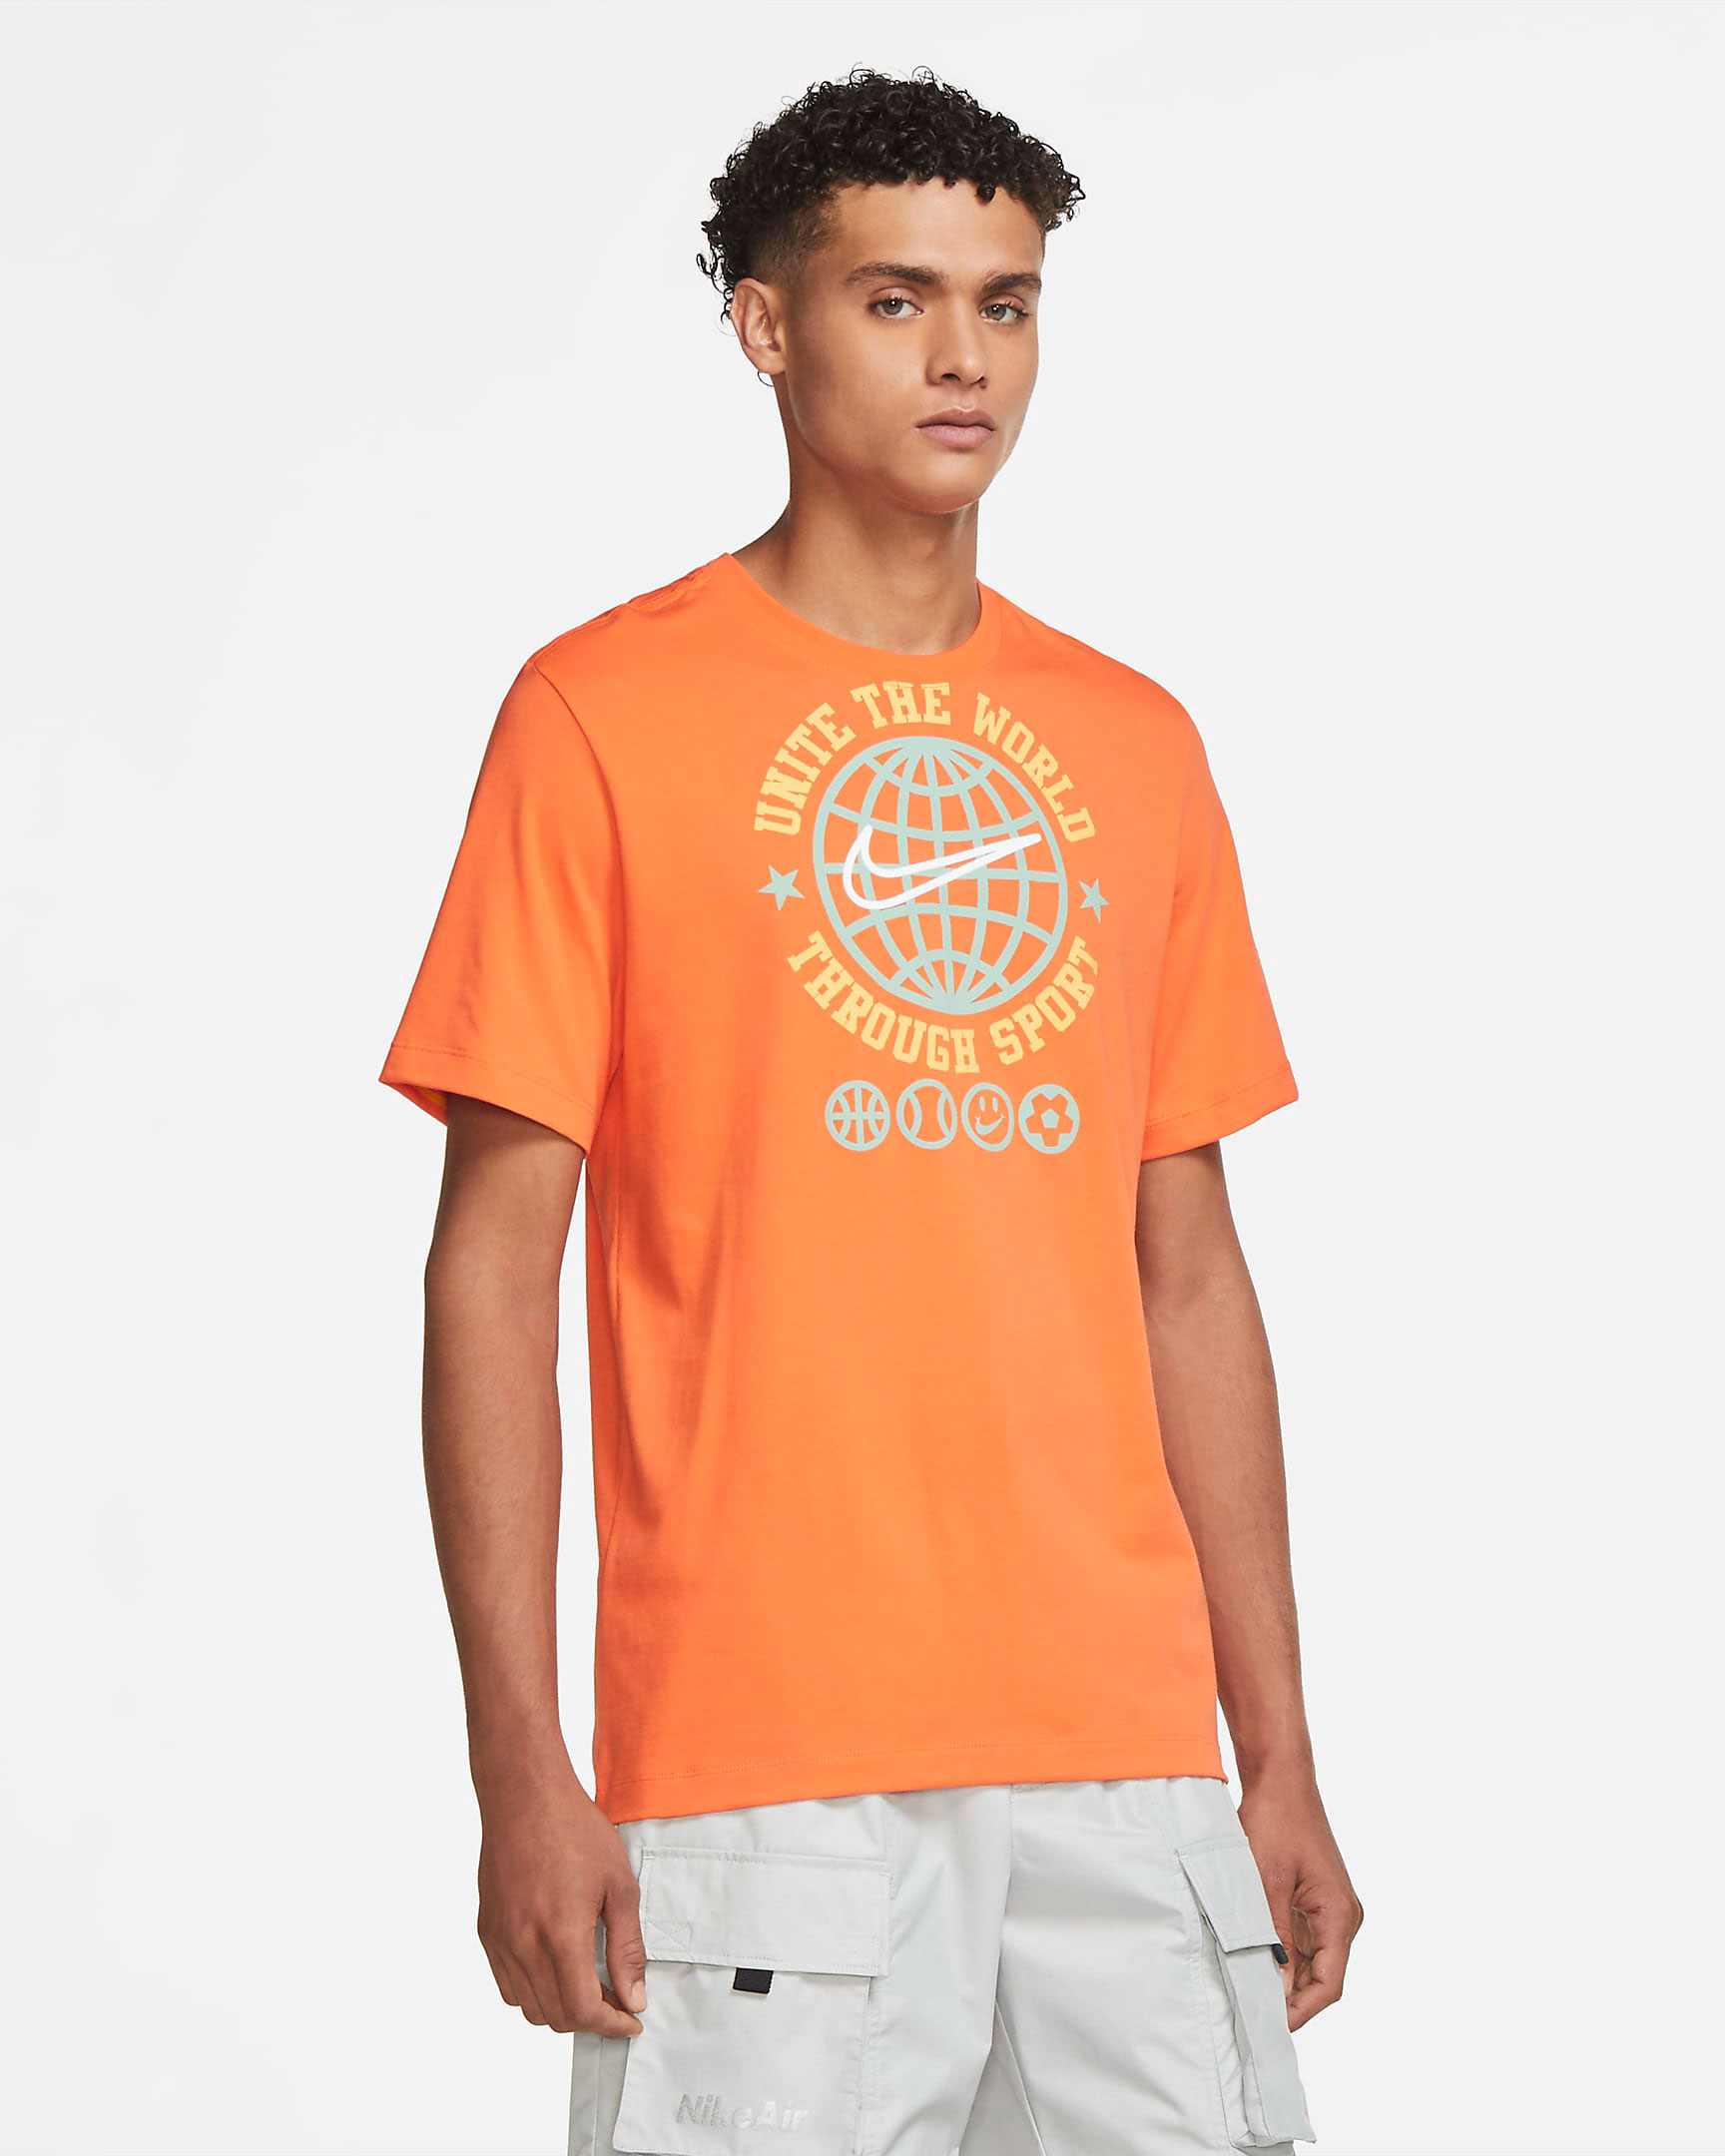 nike-sportswear-be-kind-orange-shirt-1